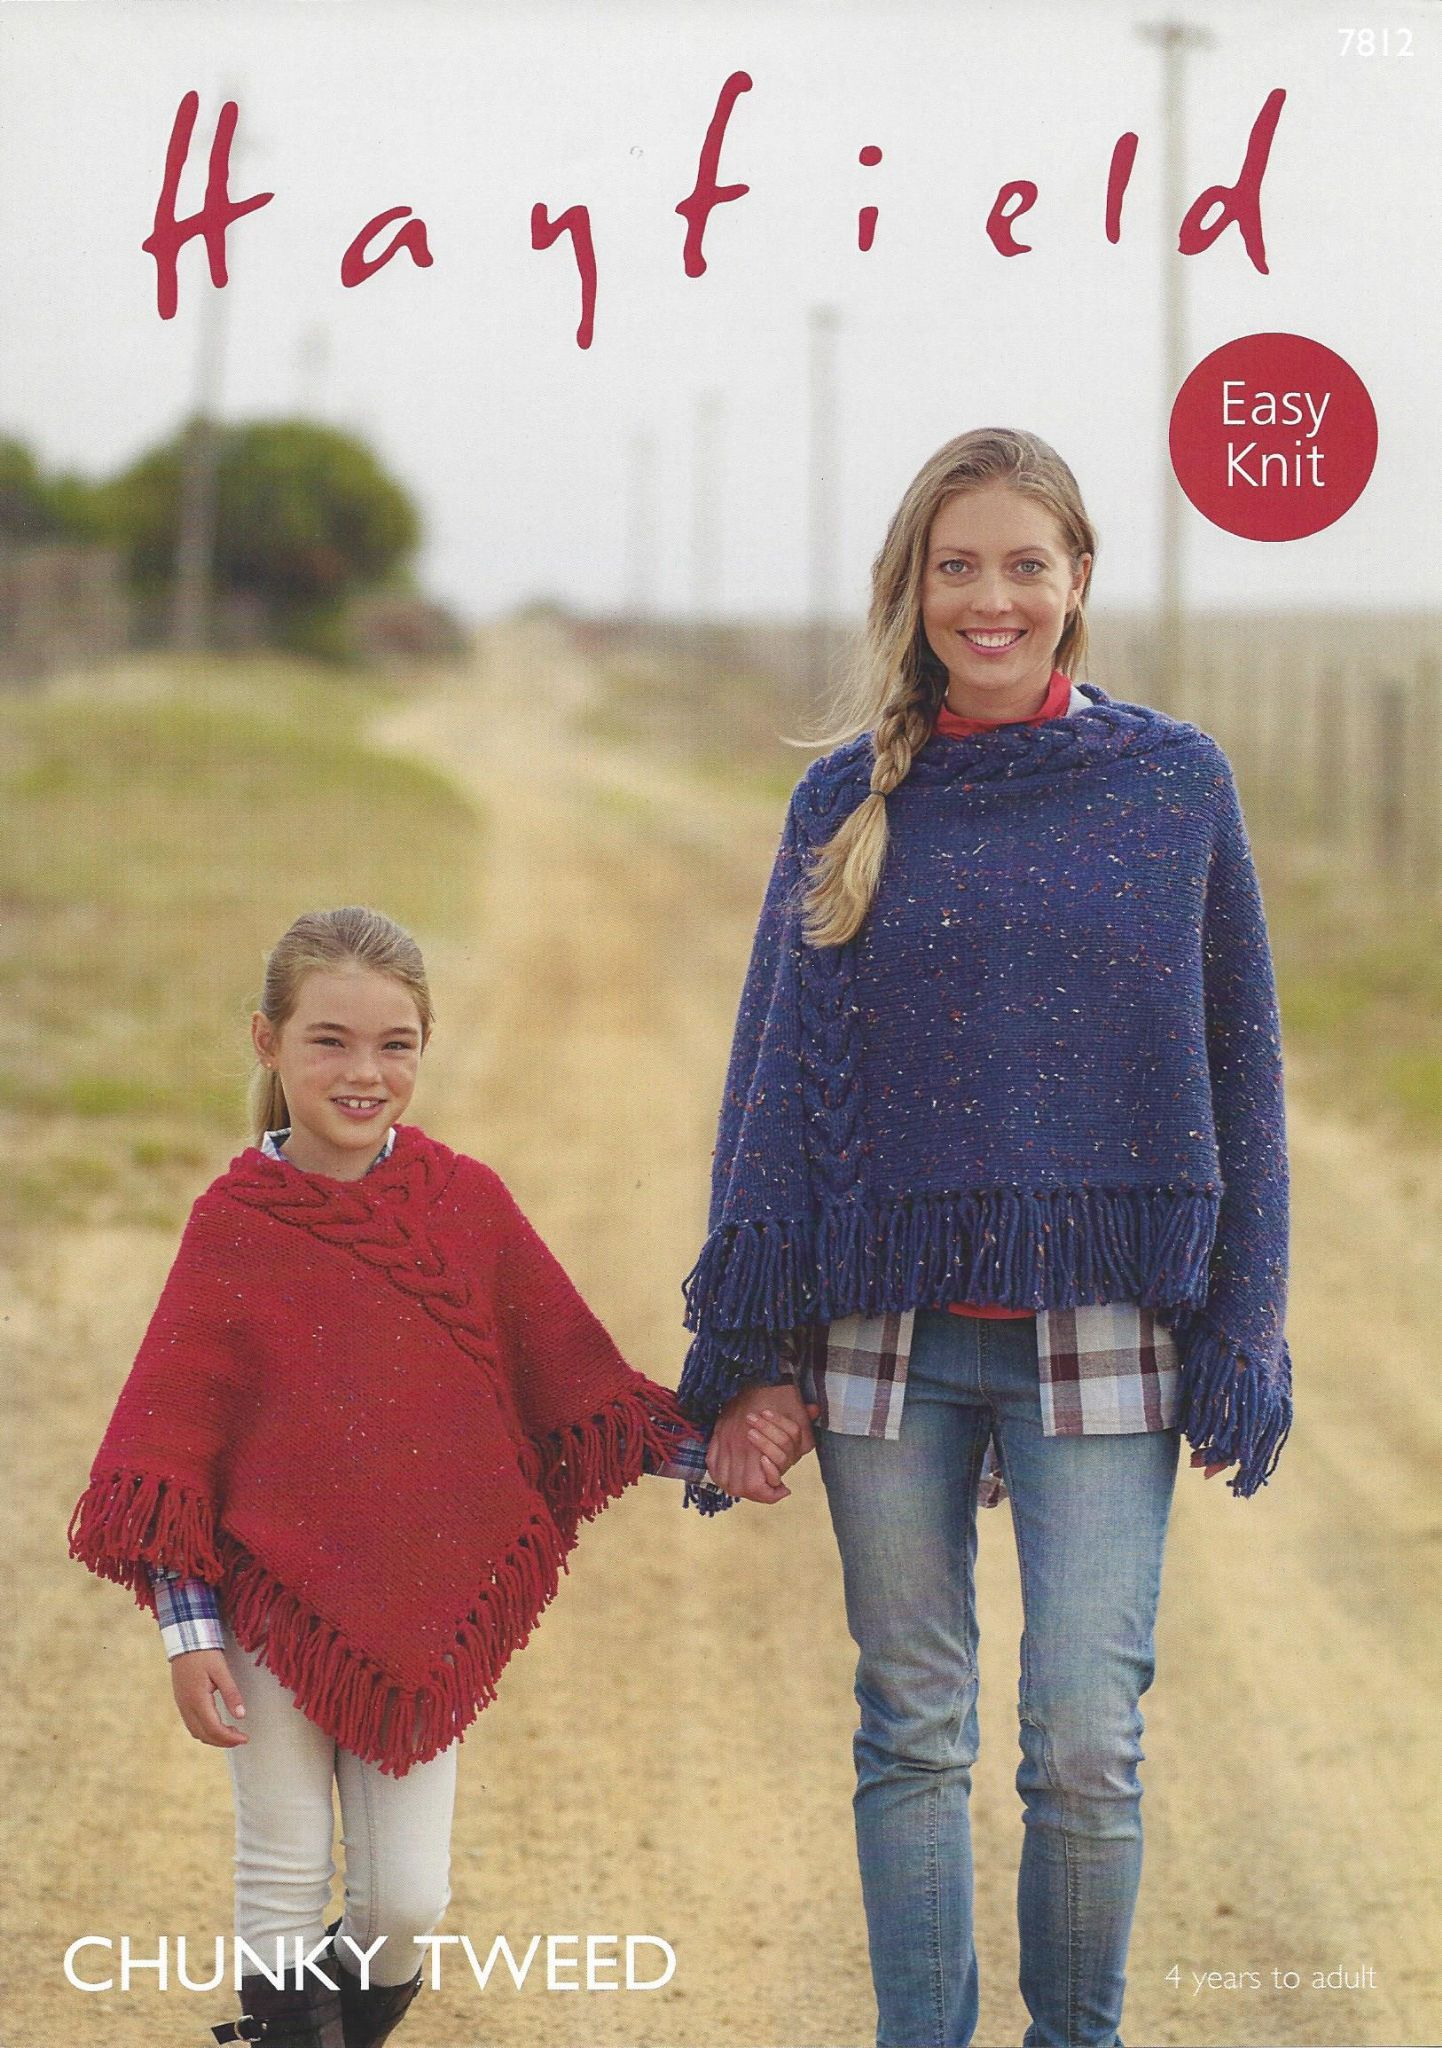 7812 - HAYFIELD CHUNKY TWEED EASY KNIT PONCHO KNITTING PATTERN - 4 ...